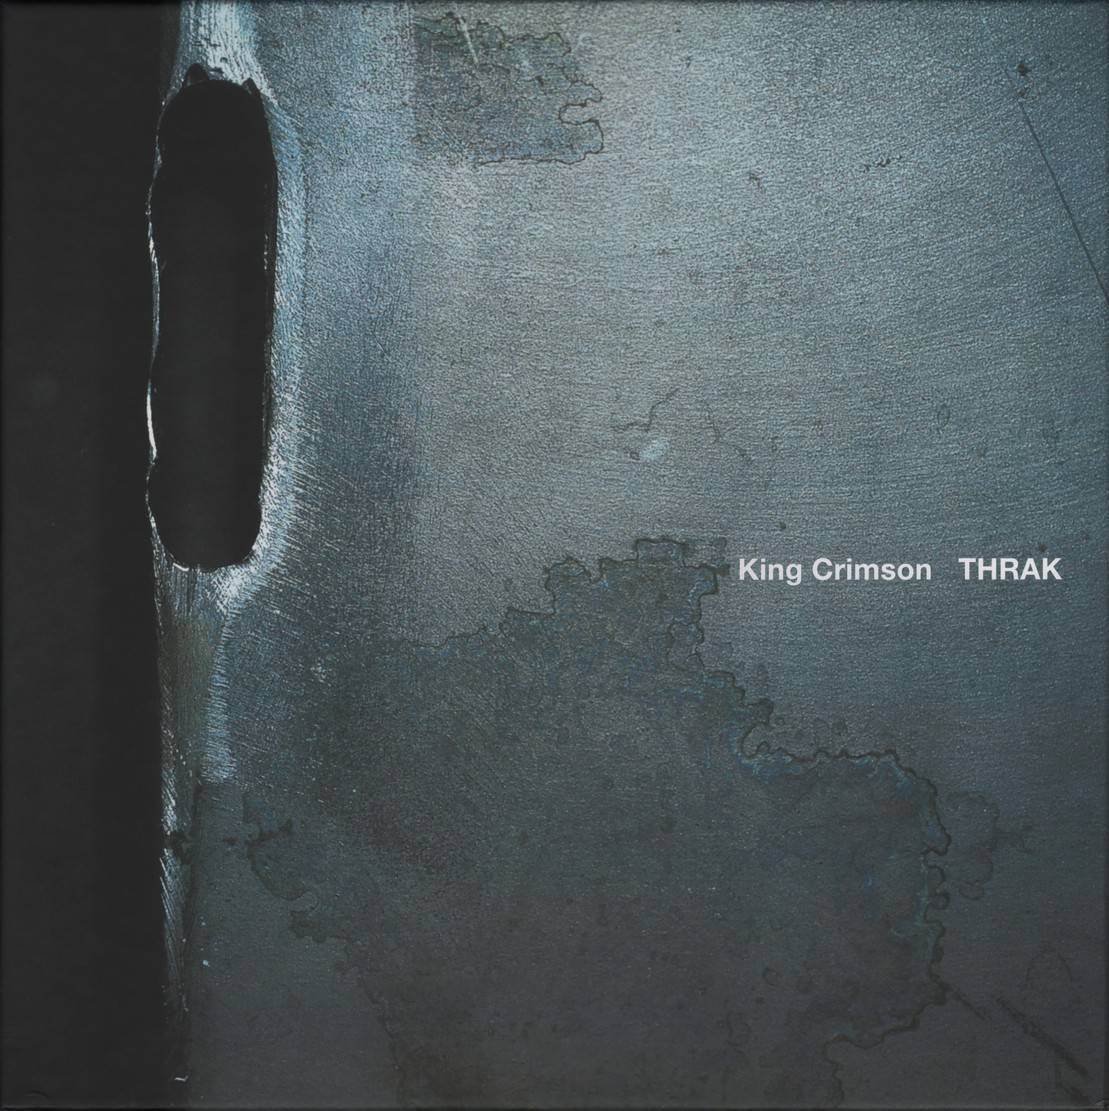 King Crimson - THRAK (1995) {2xBlu-ray only 40th Anniversary Series DGM KCCBX13 rel 2015}